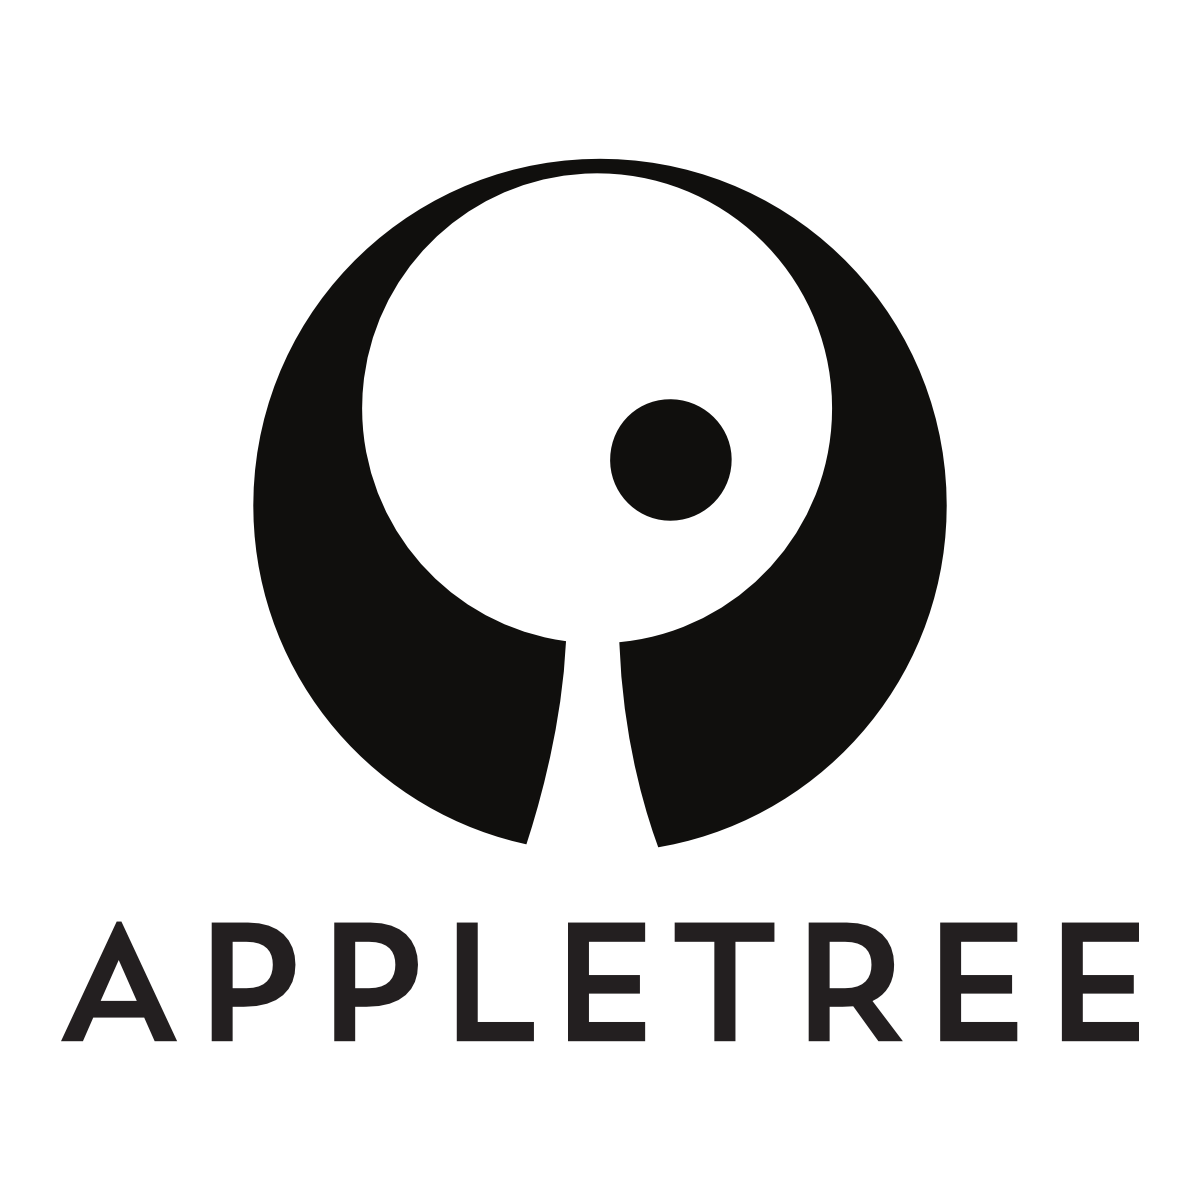 Appletree Surfboards